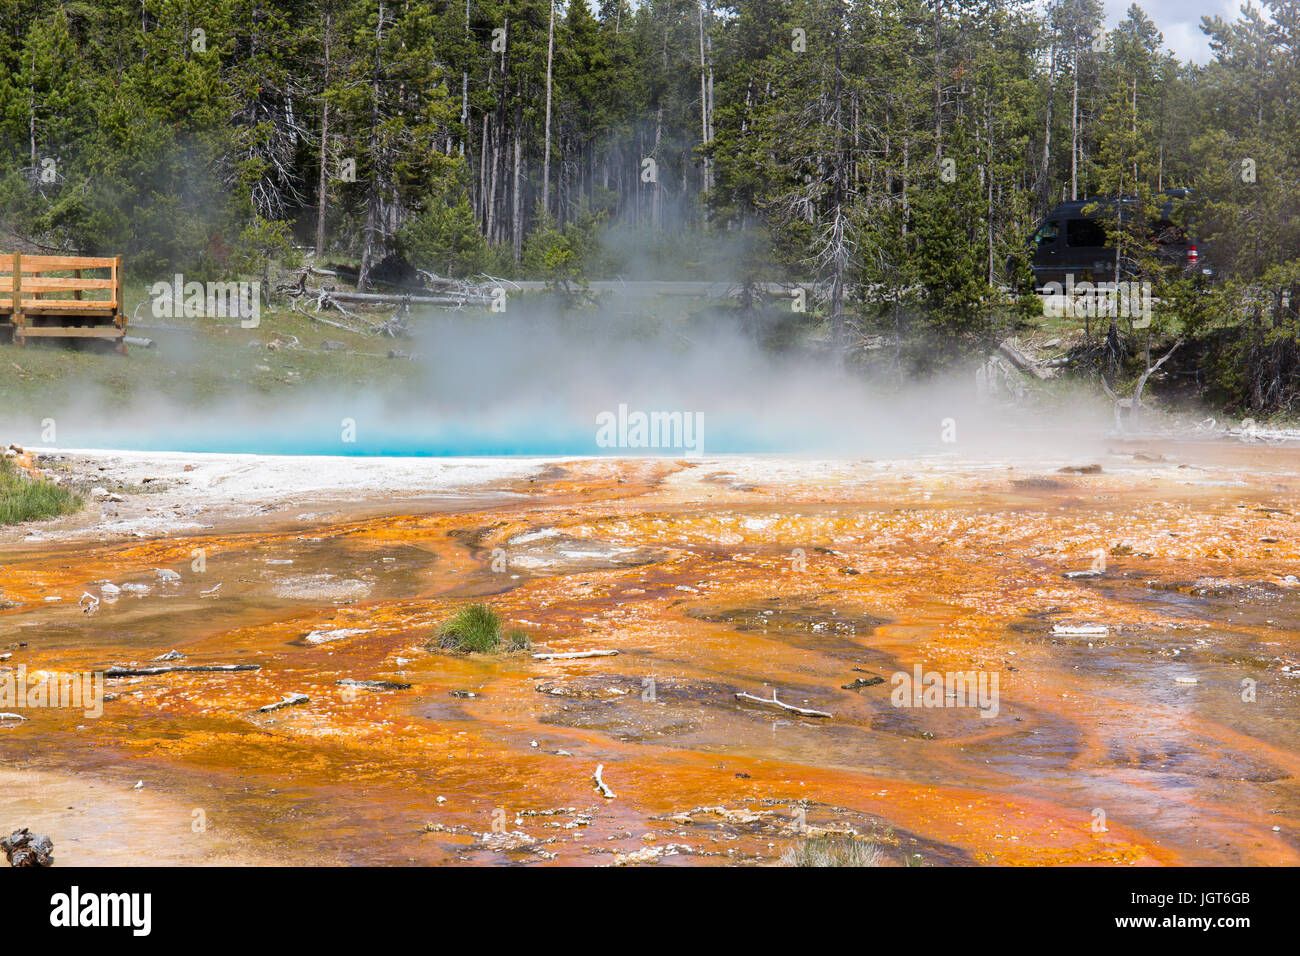 Silex Spring in the Lower Geyser Basin as seen from the Fountain Paintpot Trail, Yellowstone National Park - Stock Image